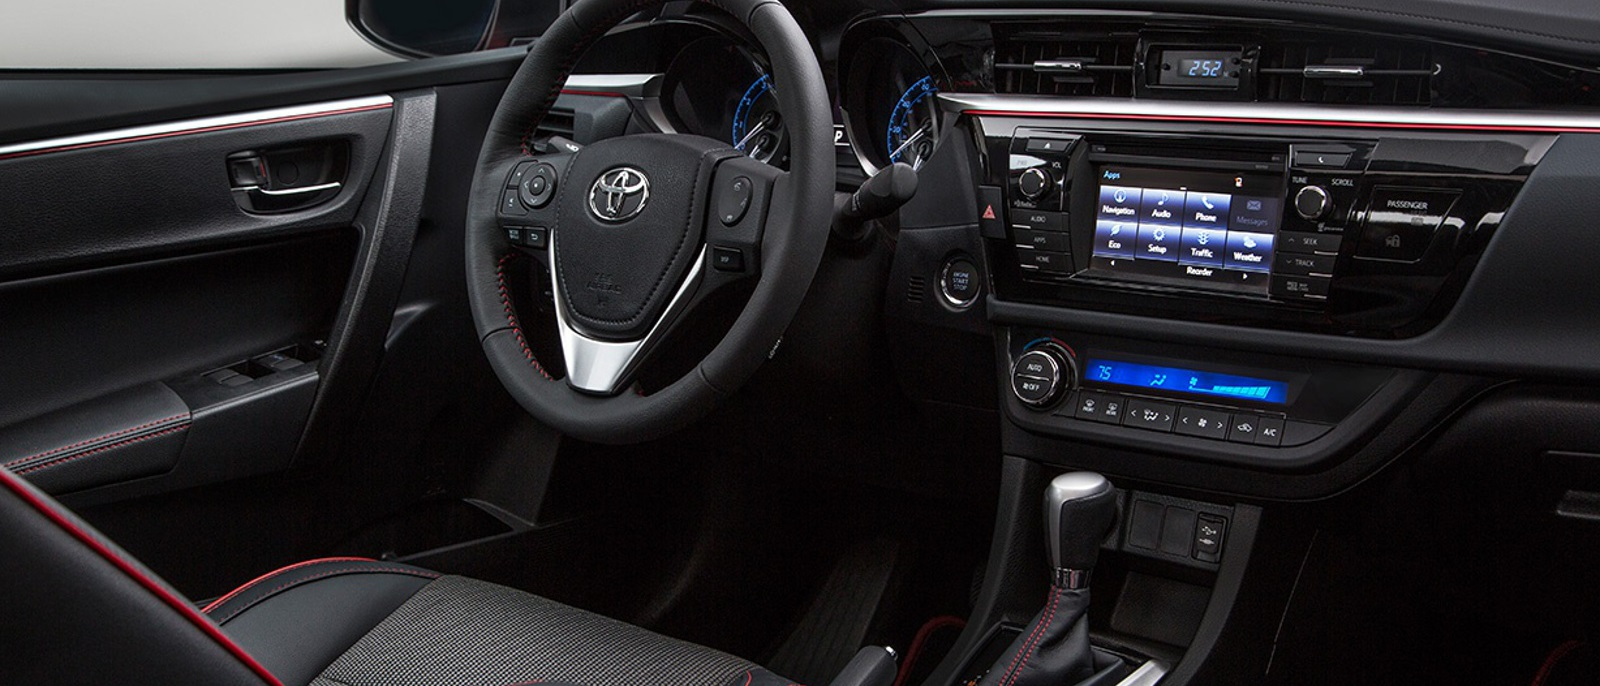 Toyota Corolla Interior Colors 2017 Awesome Home